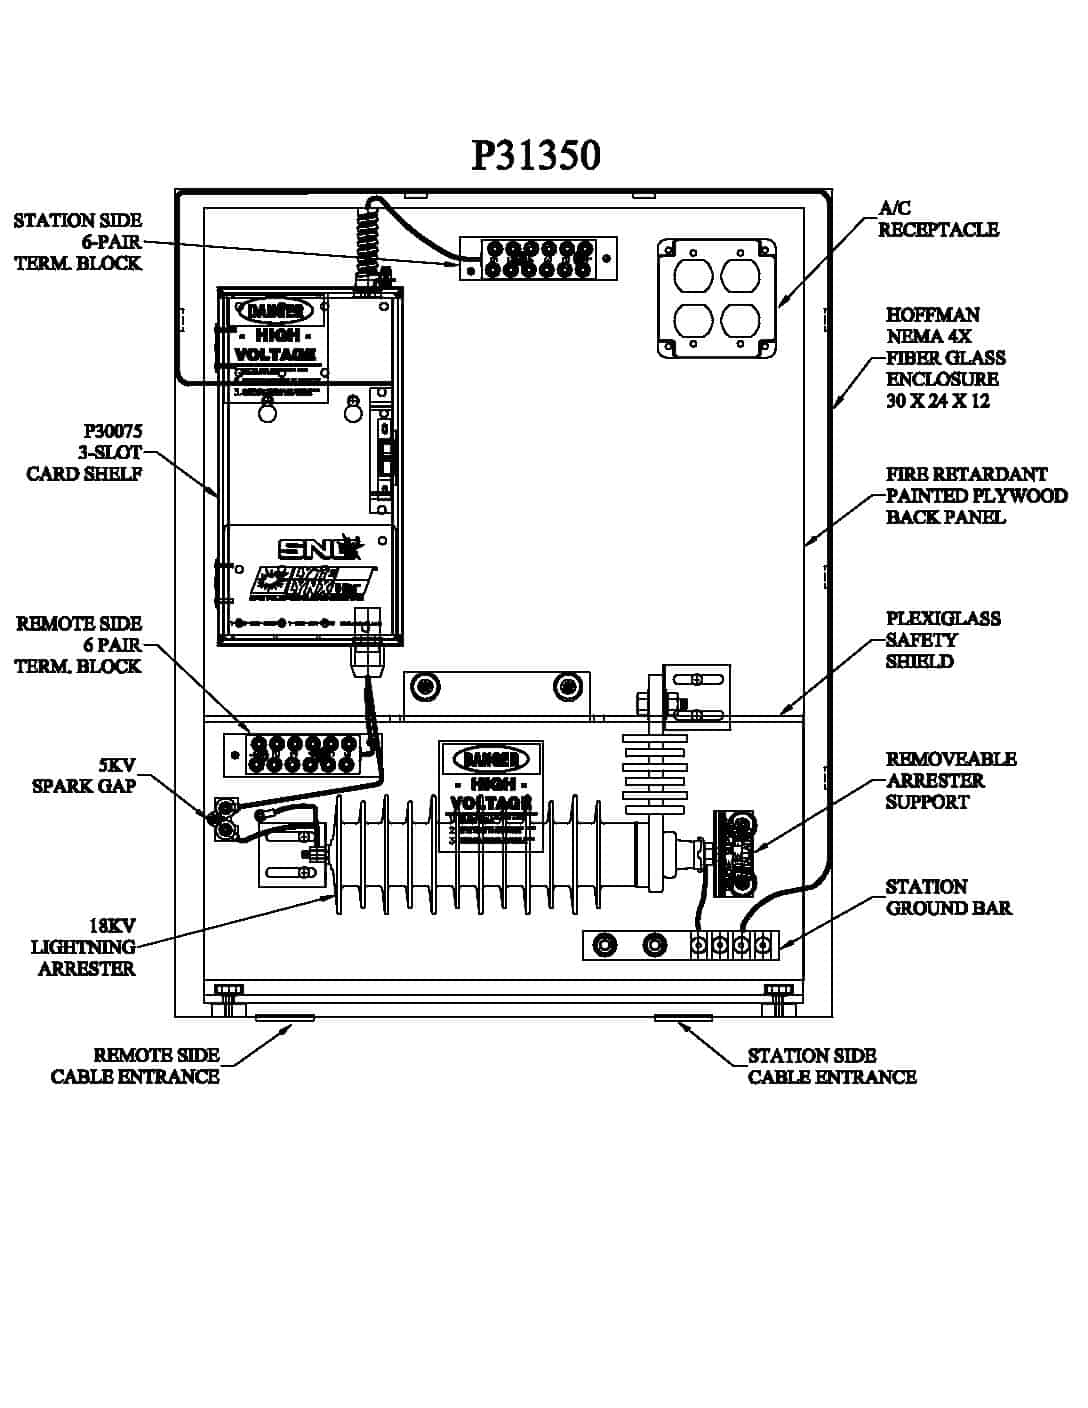 P31350 Turnkey Protection Packages - 3 slot PDF thumbnail